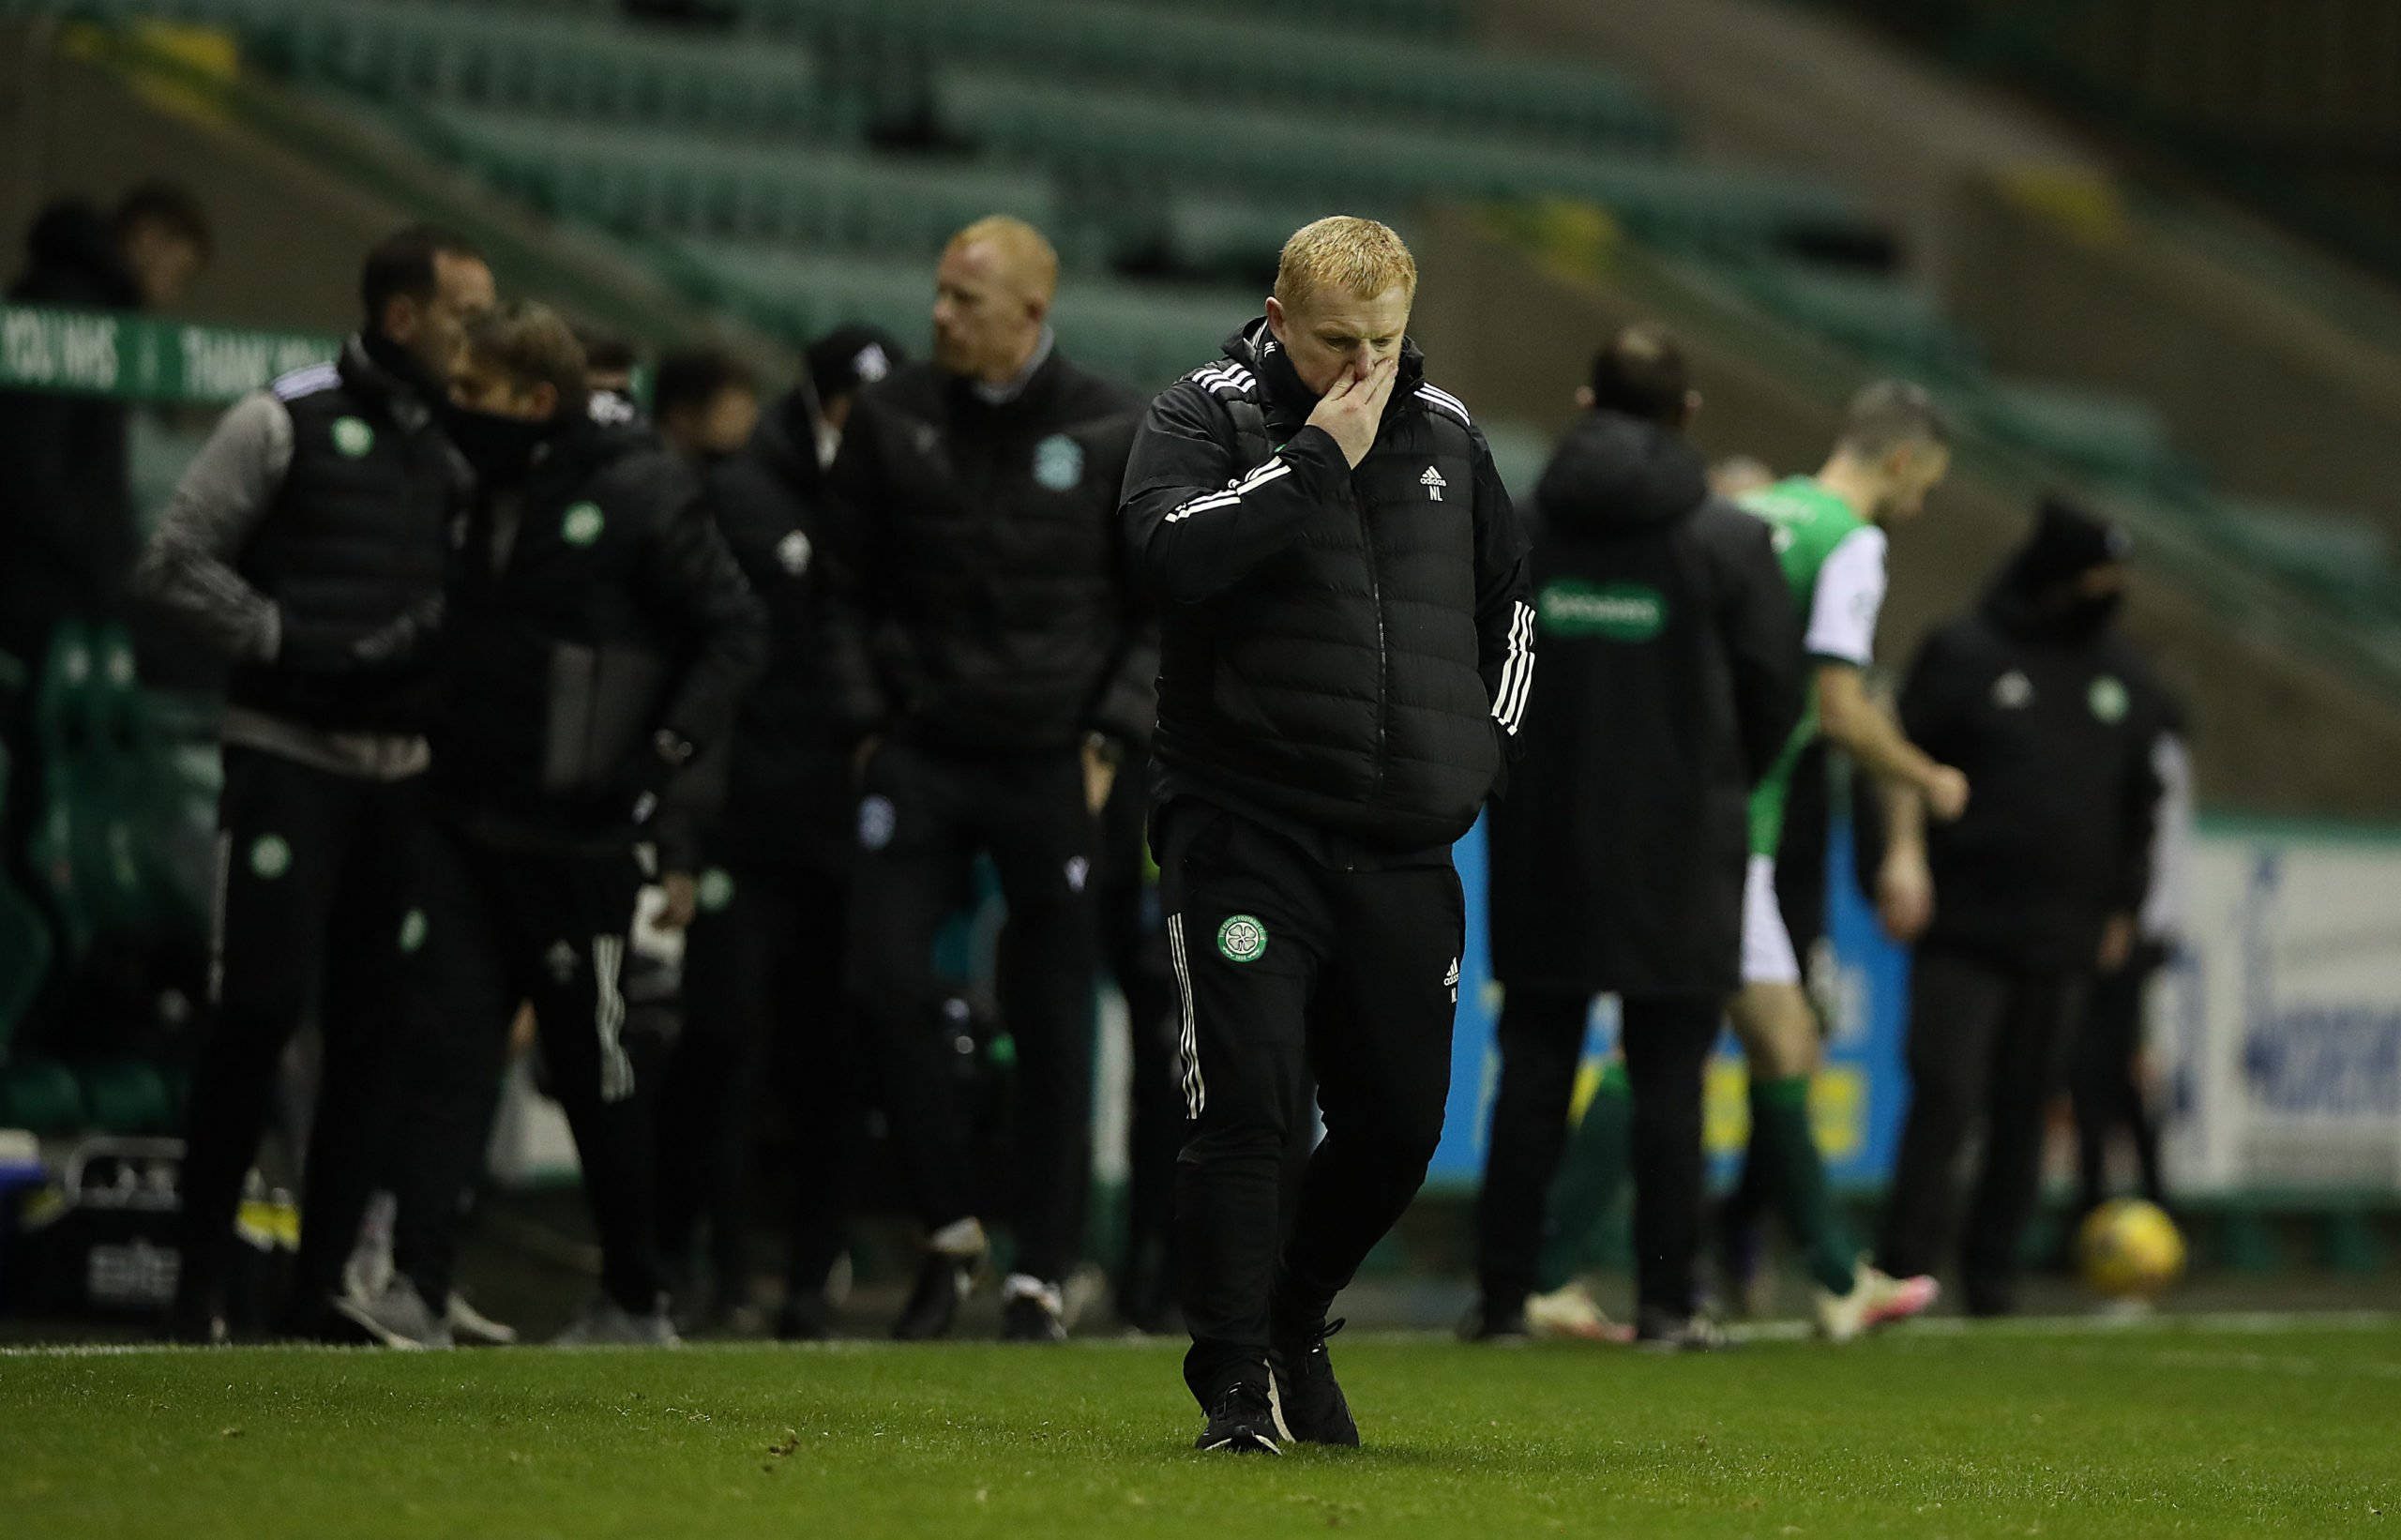 19-club manager's brutal putdown of Celtic foes; ridicules their chances